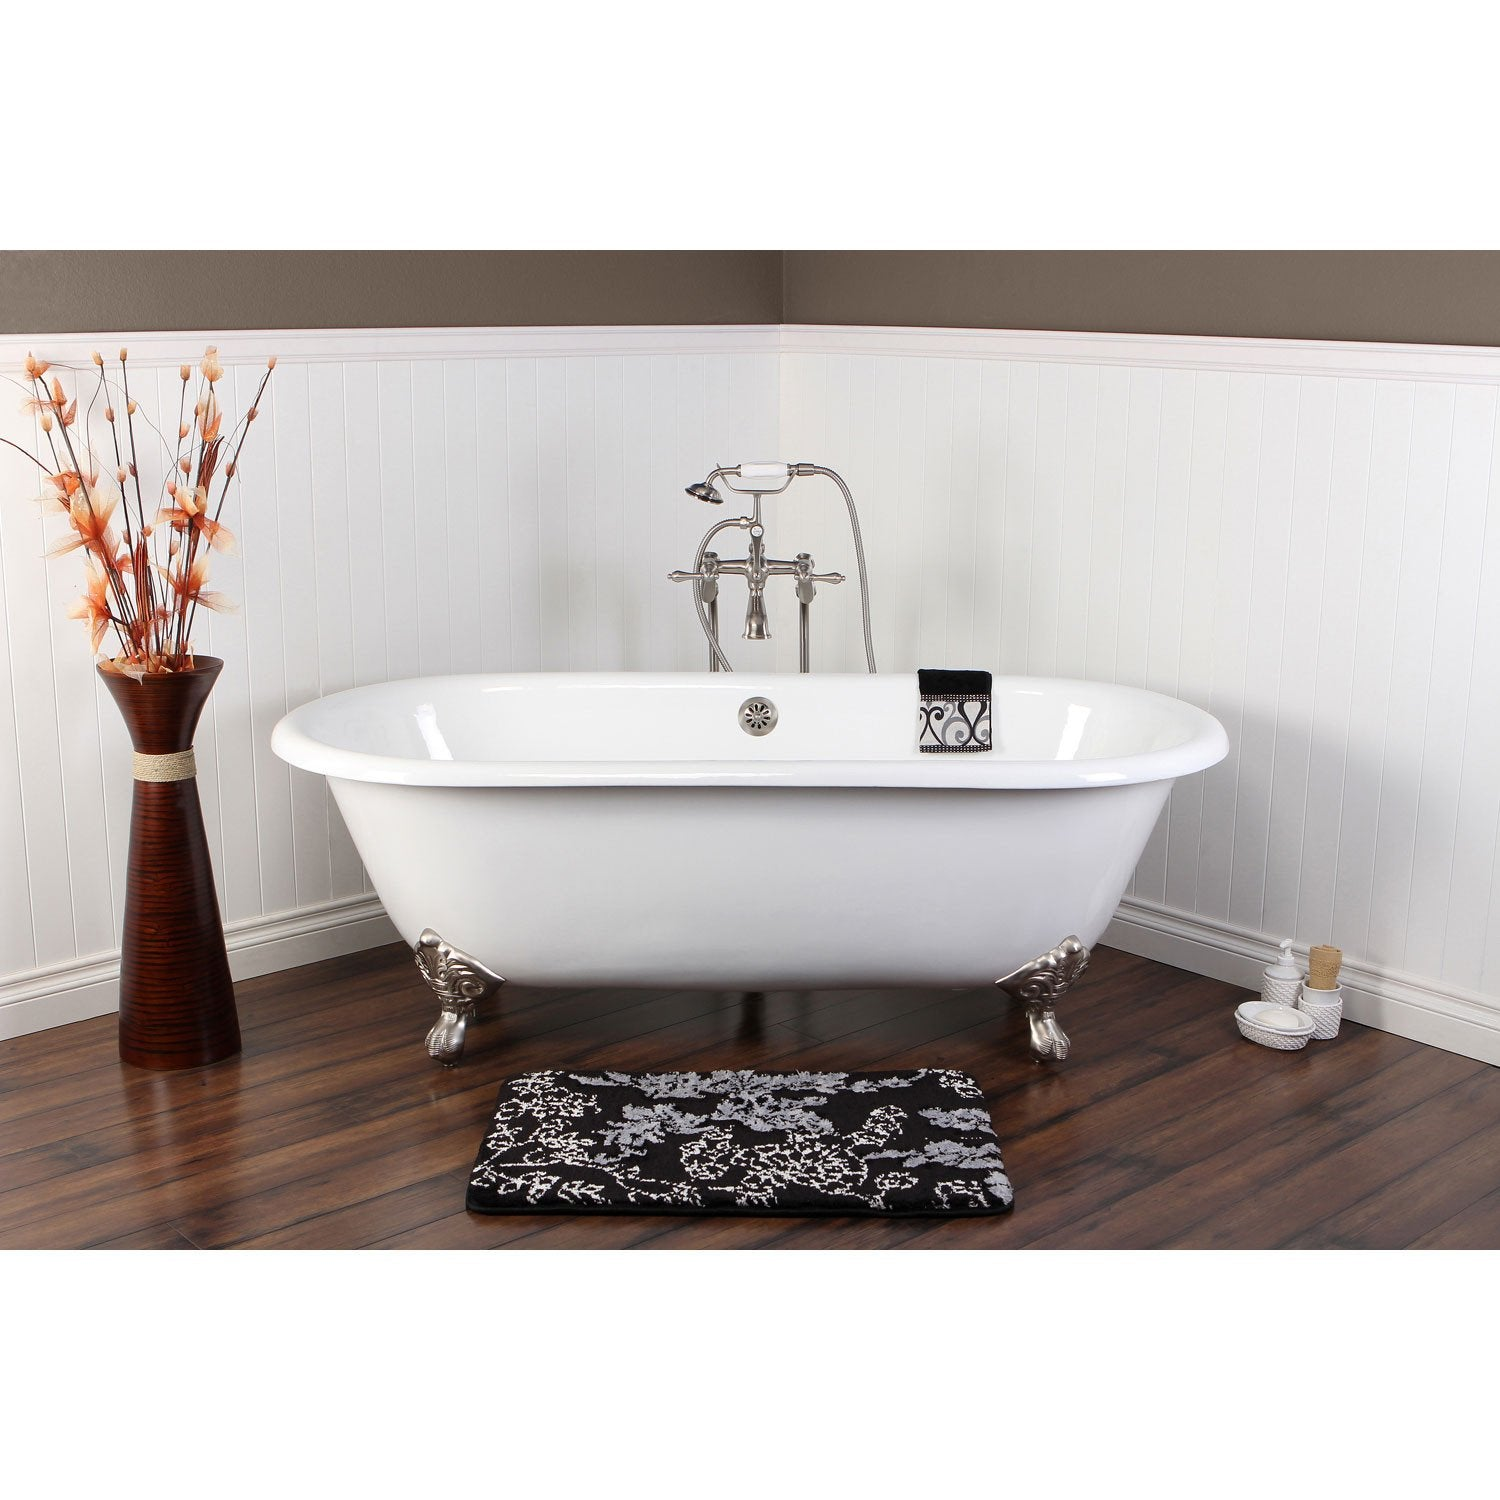 66 Clawfoot Tub W Freestanding Satin Nickel Tub Filler Hardware Package Ctp37